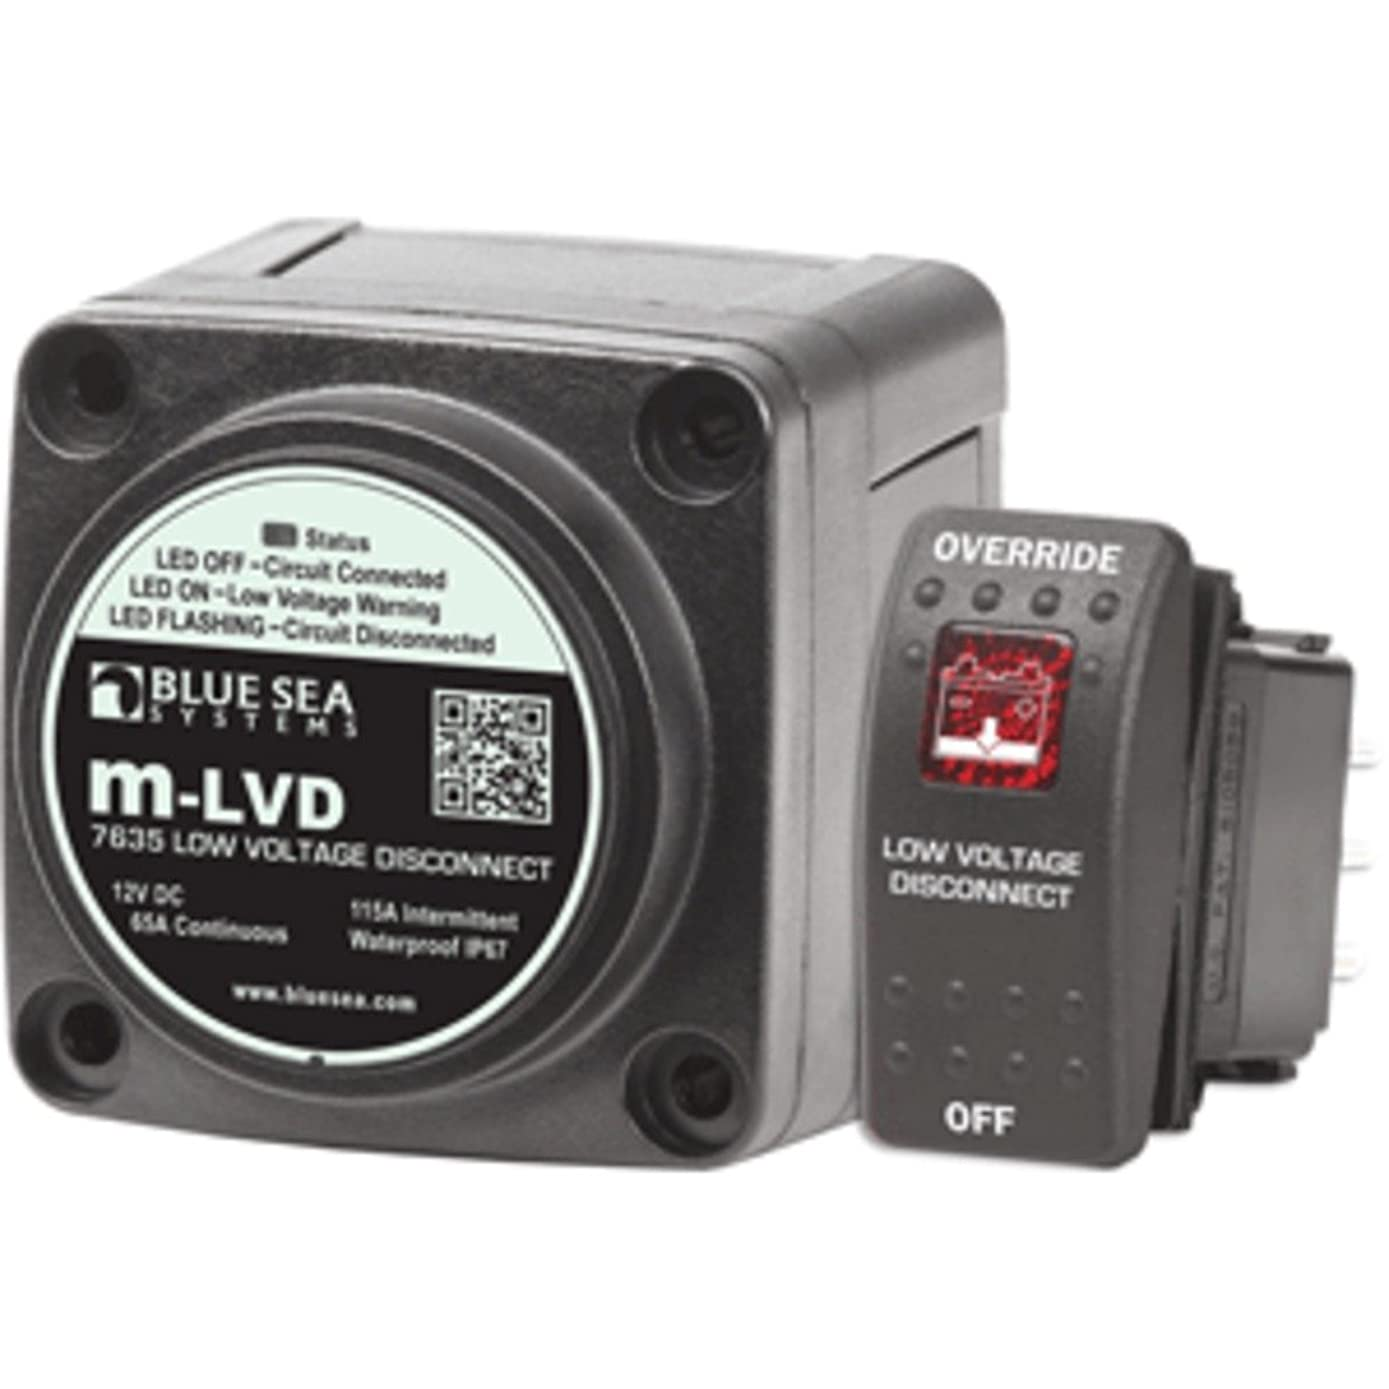 Blue Sea 7635 m-LVD Low Voltage Disconnect Marine , Boating Equipment